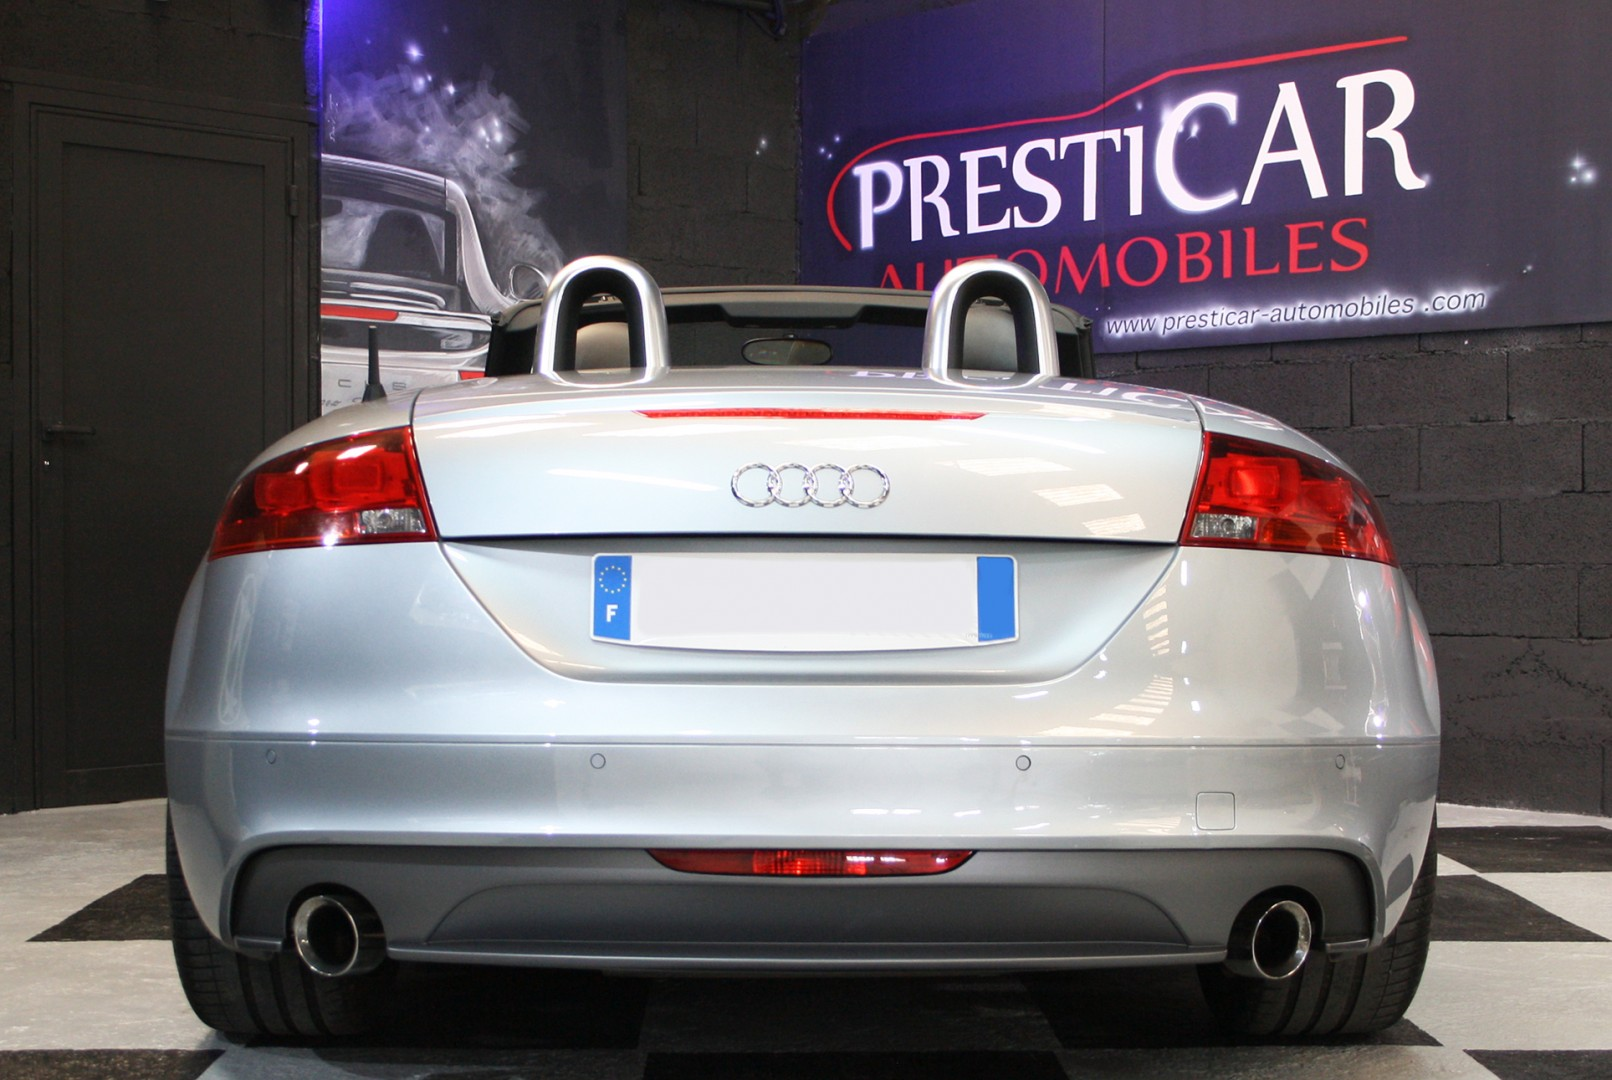 audi tt 1 8 tfsi 160ch sline presticar automobiles. Black Bedroom Furniture Sets. Home Design Ideas